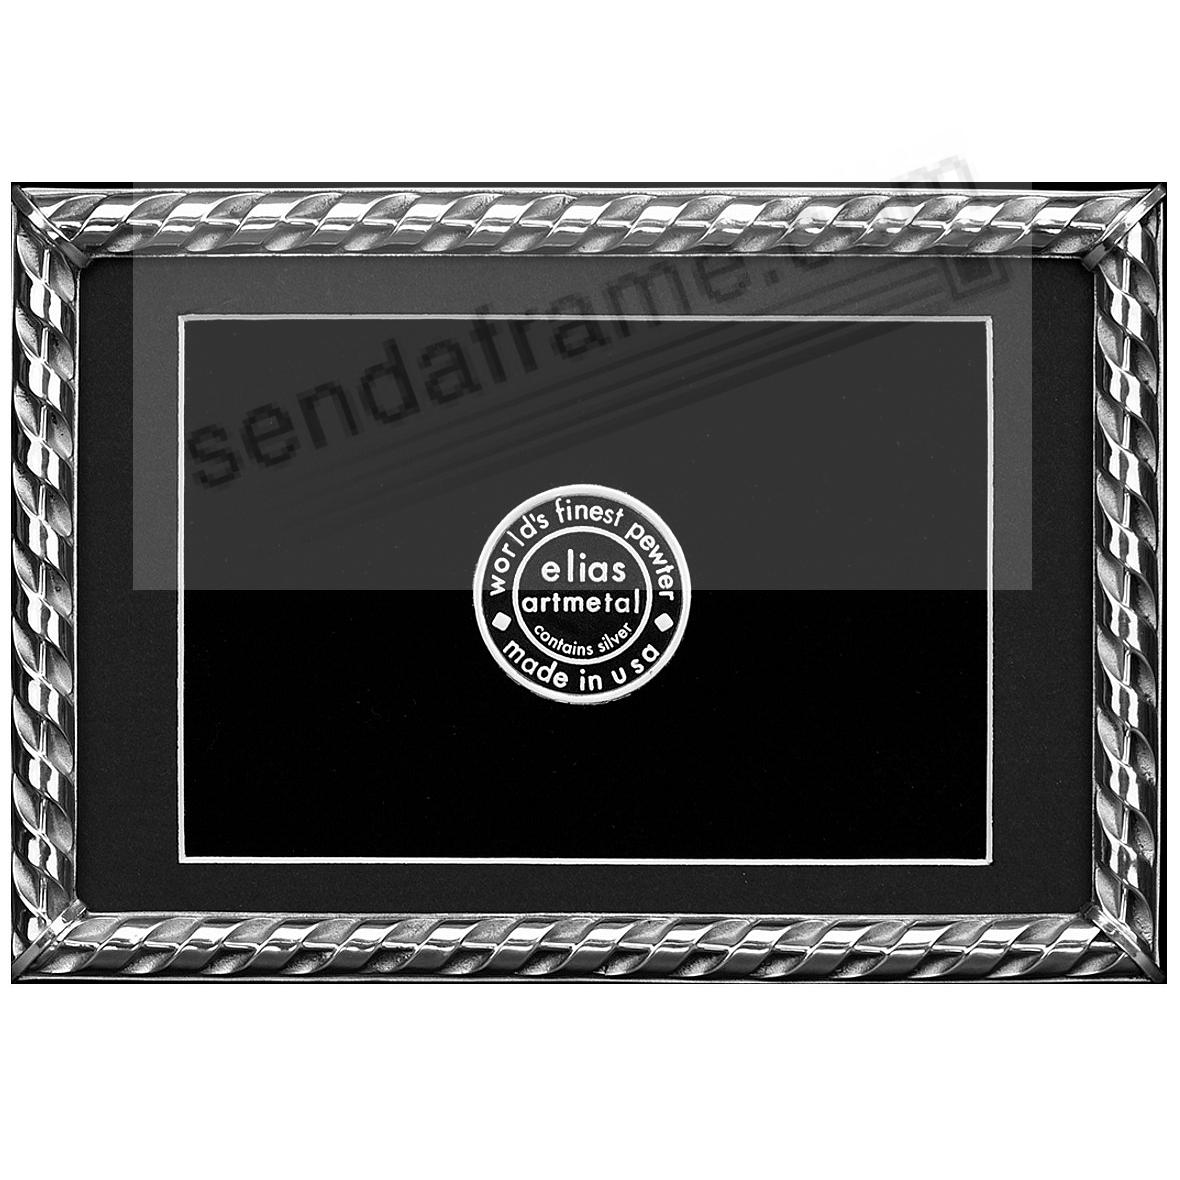 RIBBON Fine Silvered Pewter frame 5x7/4x6 by Elias Artmetal®